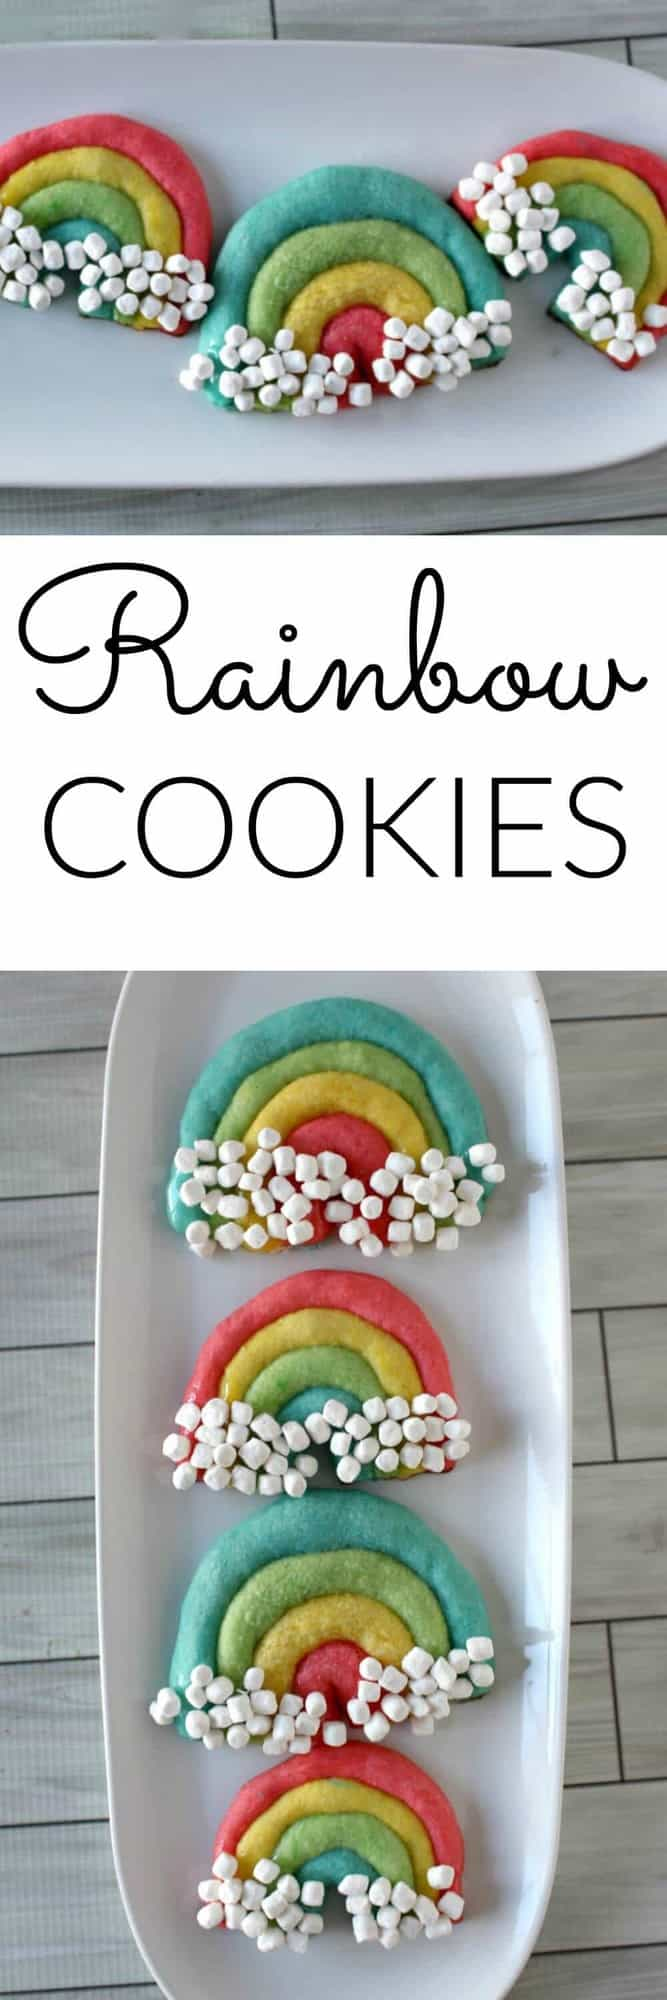 Rainbow Cookies - the perfect for Easter, St. Patricks Day or an any day treat